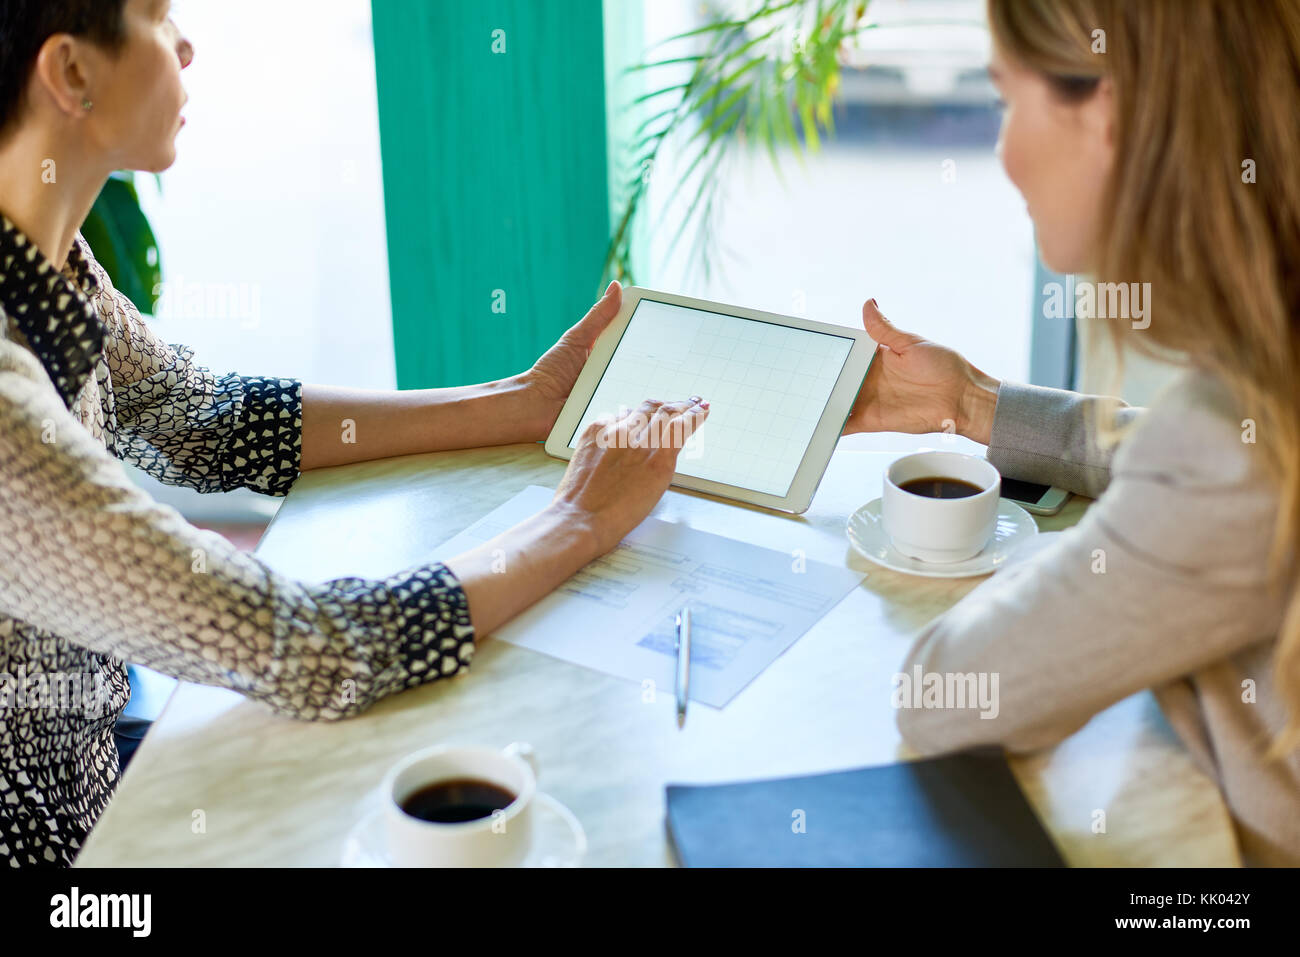 High angle view of two modern unrecognizable women  working at table in cafe using digital tablet during business - Stock Image